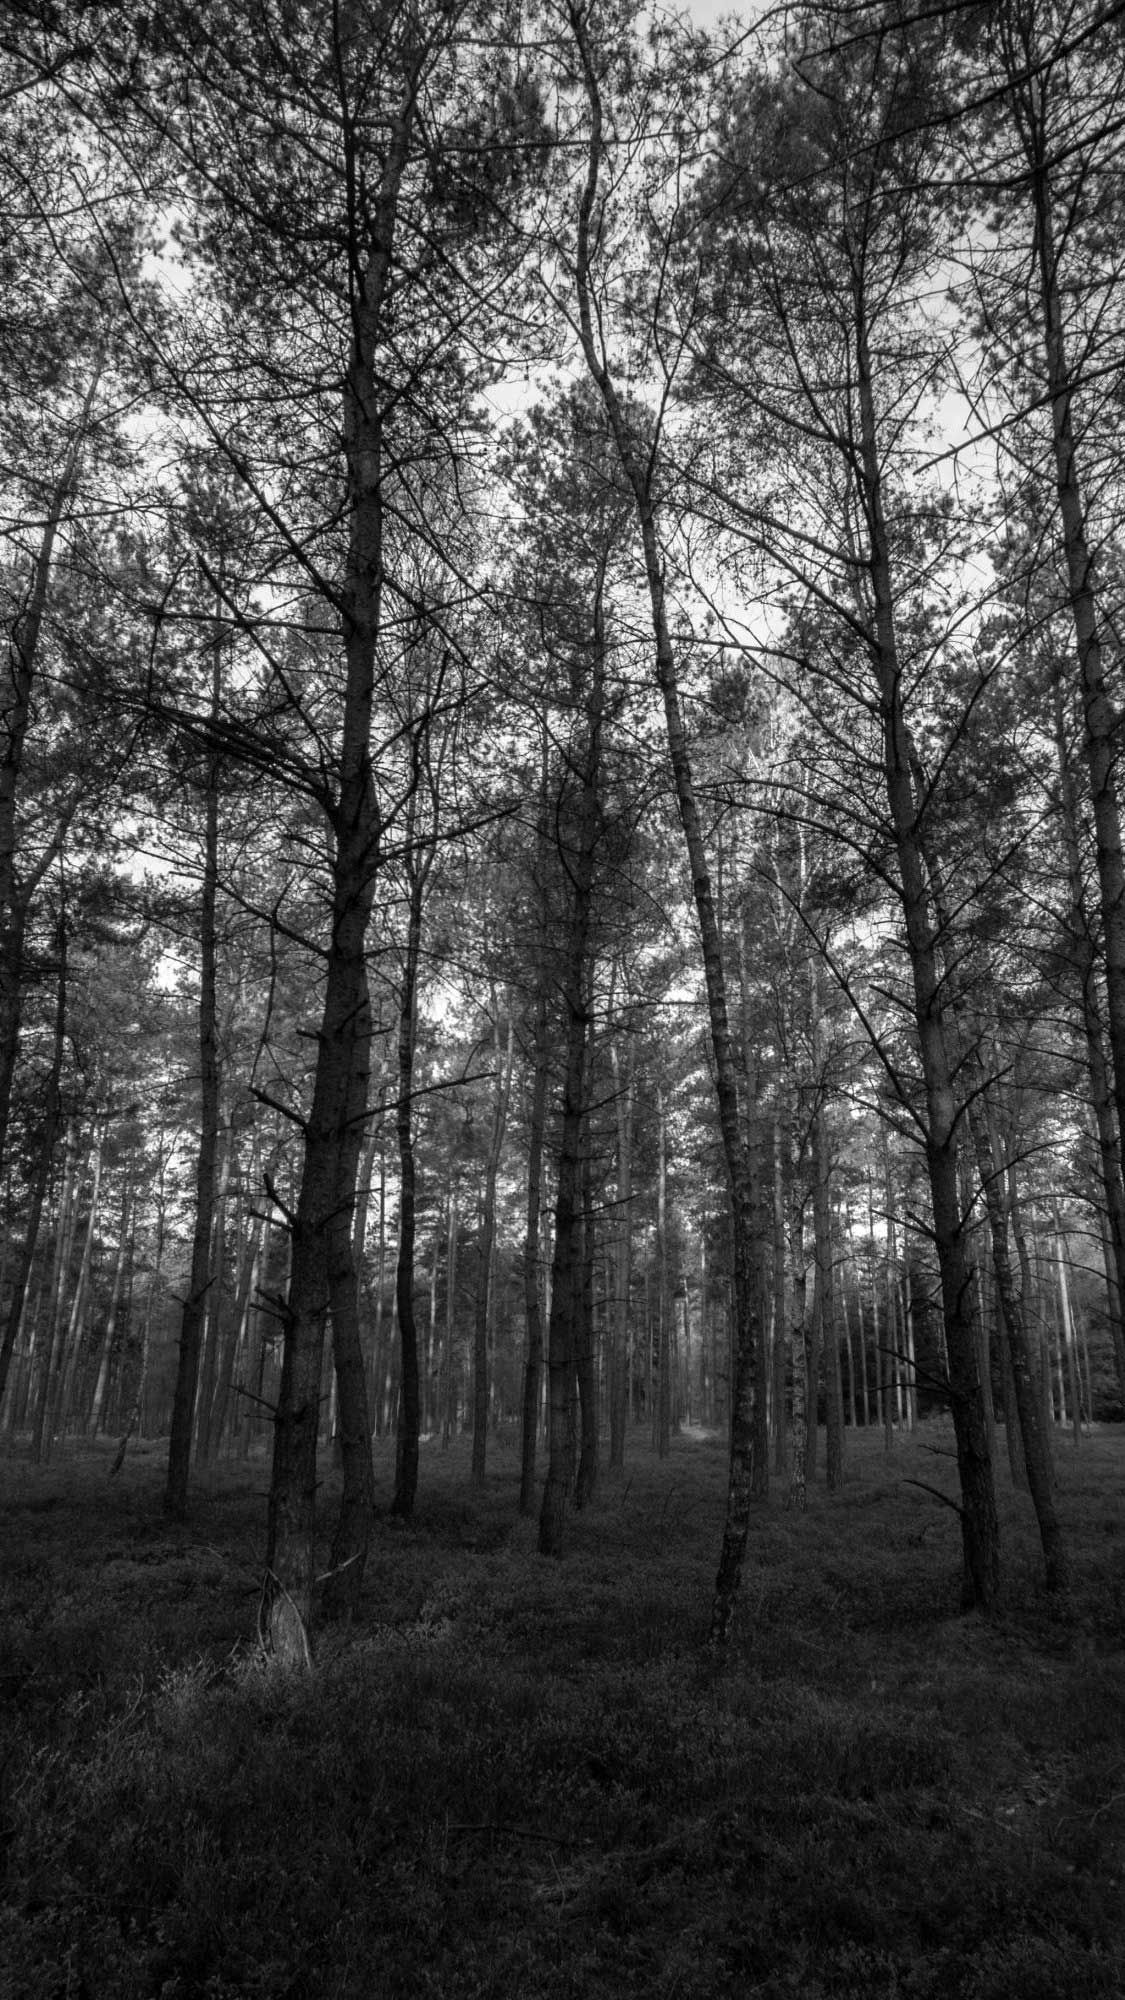 Forest Black And White Wallpaper Iphone Wallpapers Hd Black And White Wallpaper Iphone White Wallpaper For Iphone Black And White Wallpaper